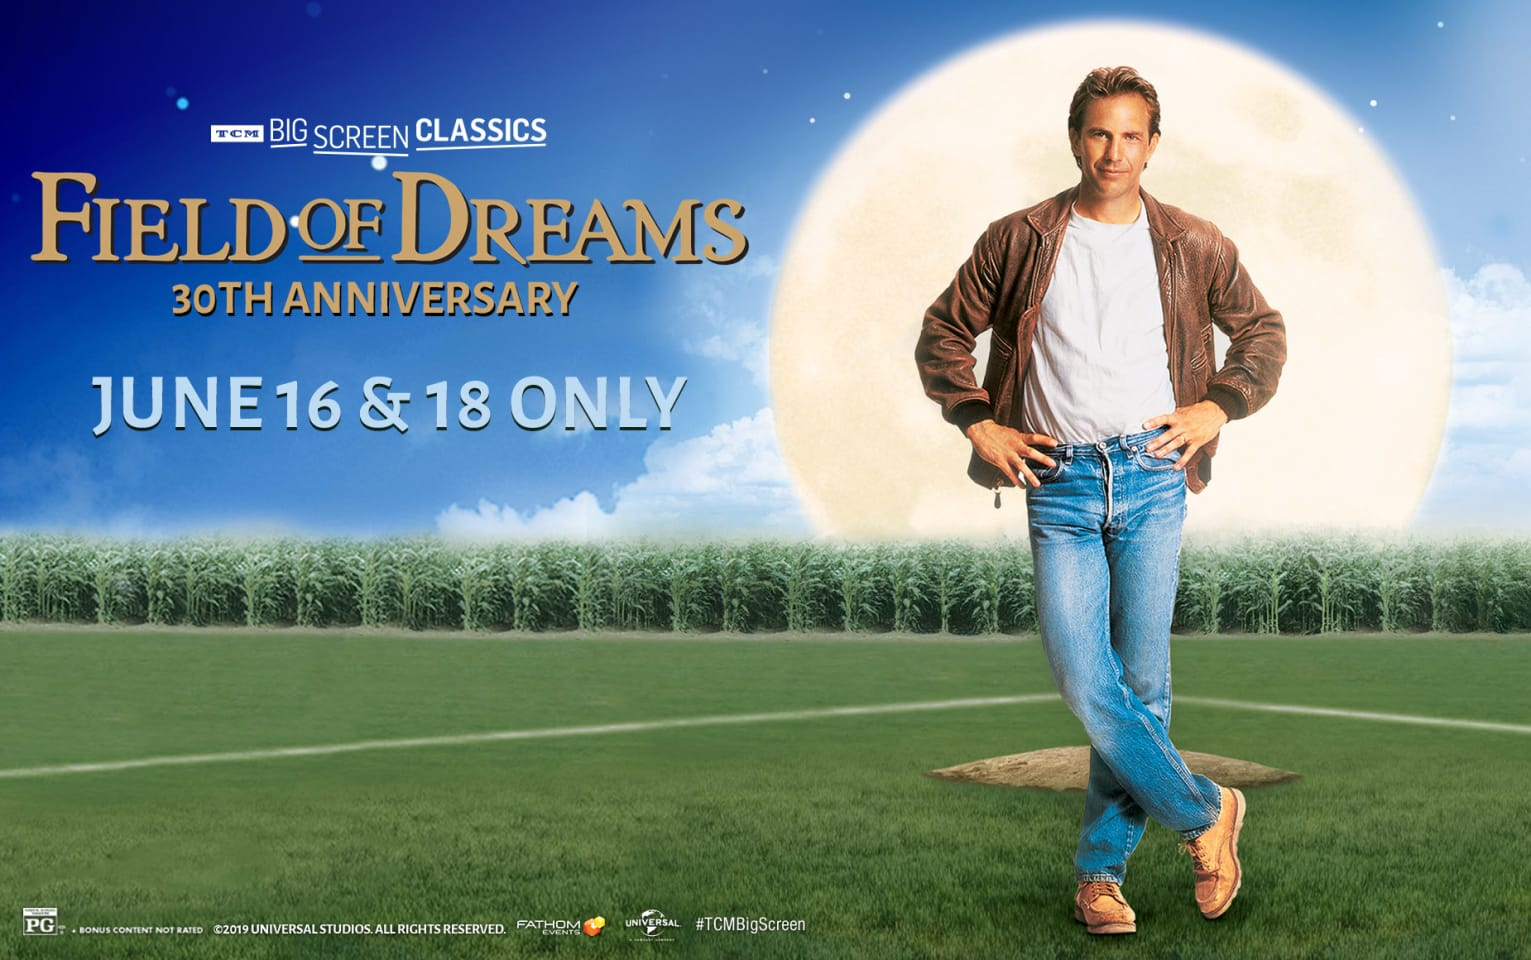 Field of Dreams 30th Anniversary (1989) presented by TCM Poster 1